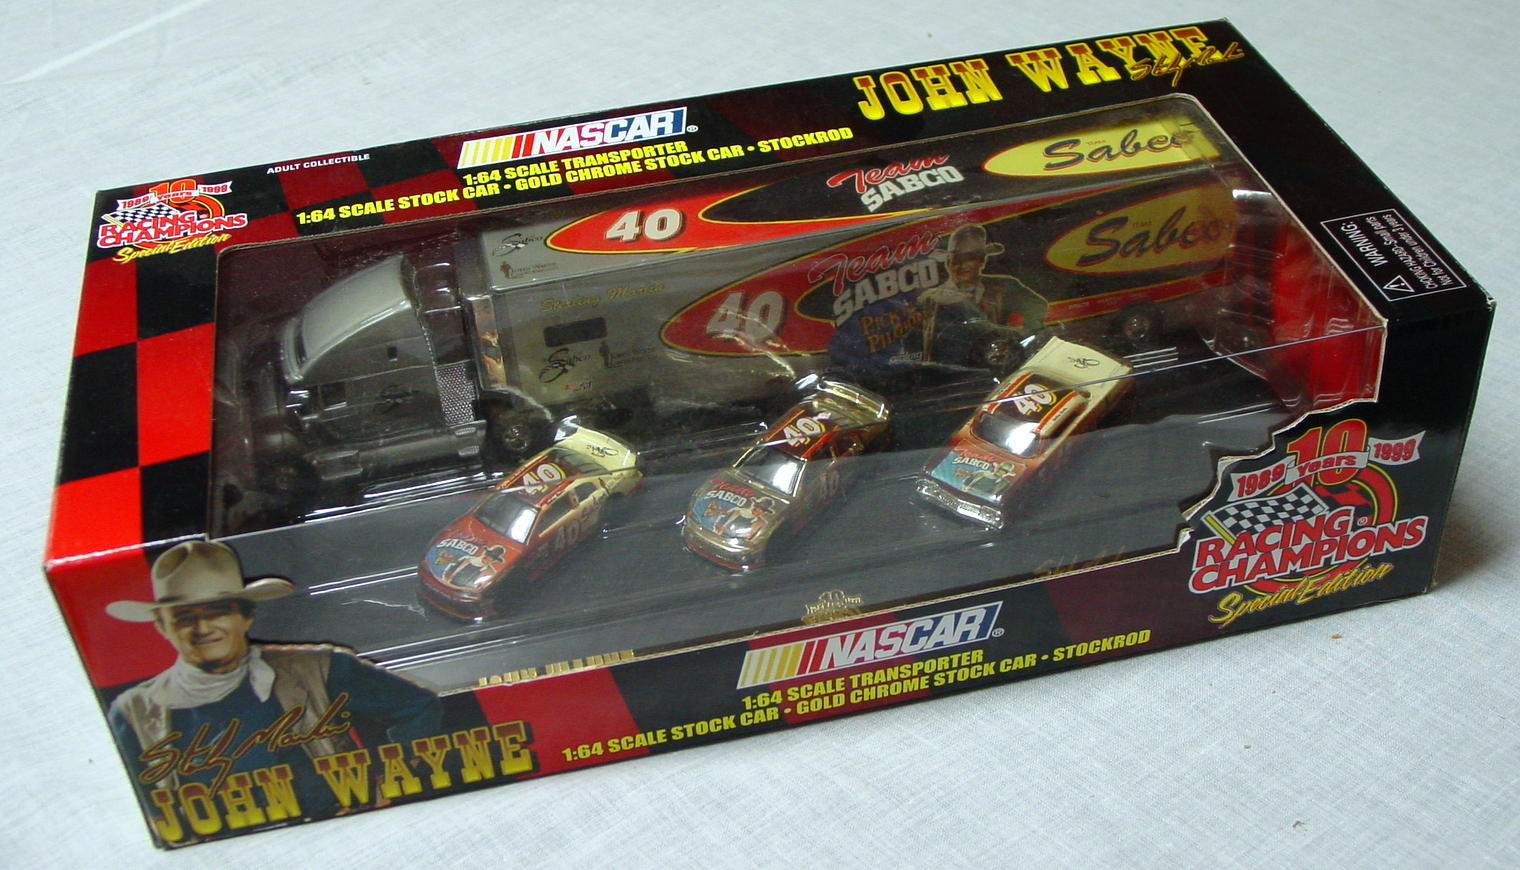 NASCAR 64 - RC Team Sabco Transporter John Wayne with 3 cars